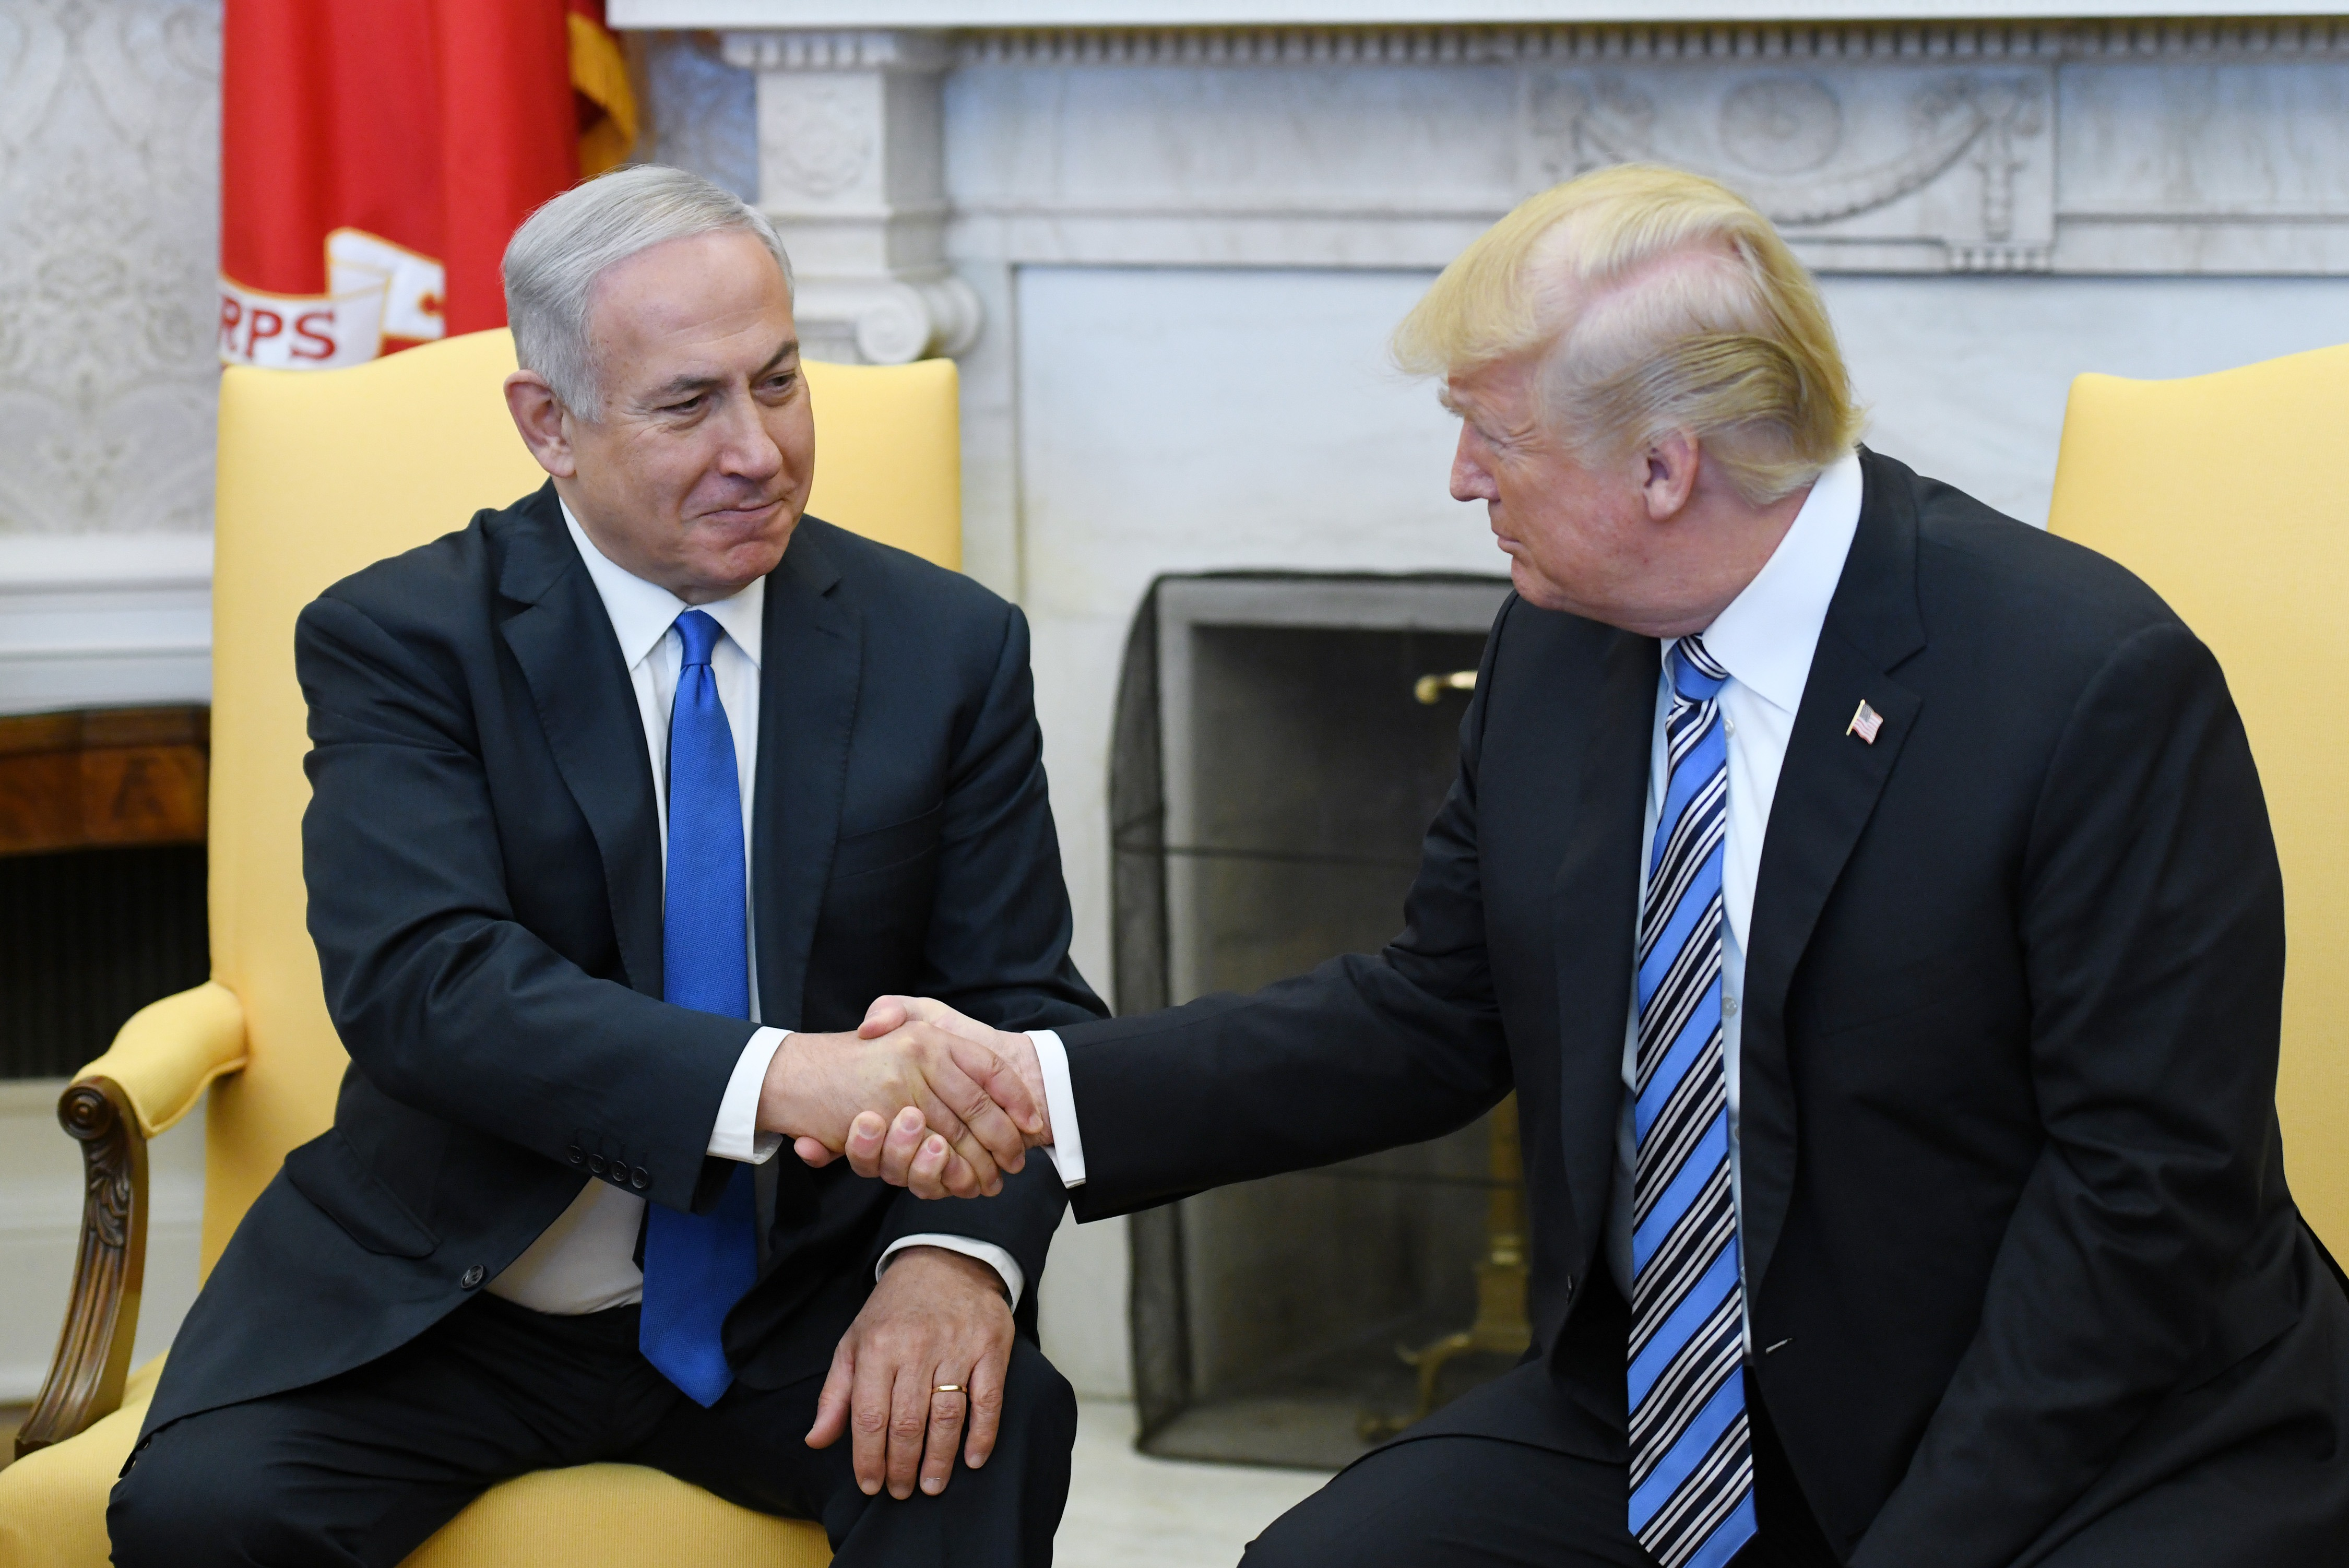 WASHINGTON, DC - MARCH 5: (AFP OUT) U.S. President Donald Trump (R) shakes hands withIsrael Prime Minister Benjamin Netanyahu as they meet in the Oval Office of the White House March 5, 2018 in Washington, DC. The prime minister is on an official visit to the US until the end of the week. (Photo by Olivier Douliery-Pool/Getty Images)